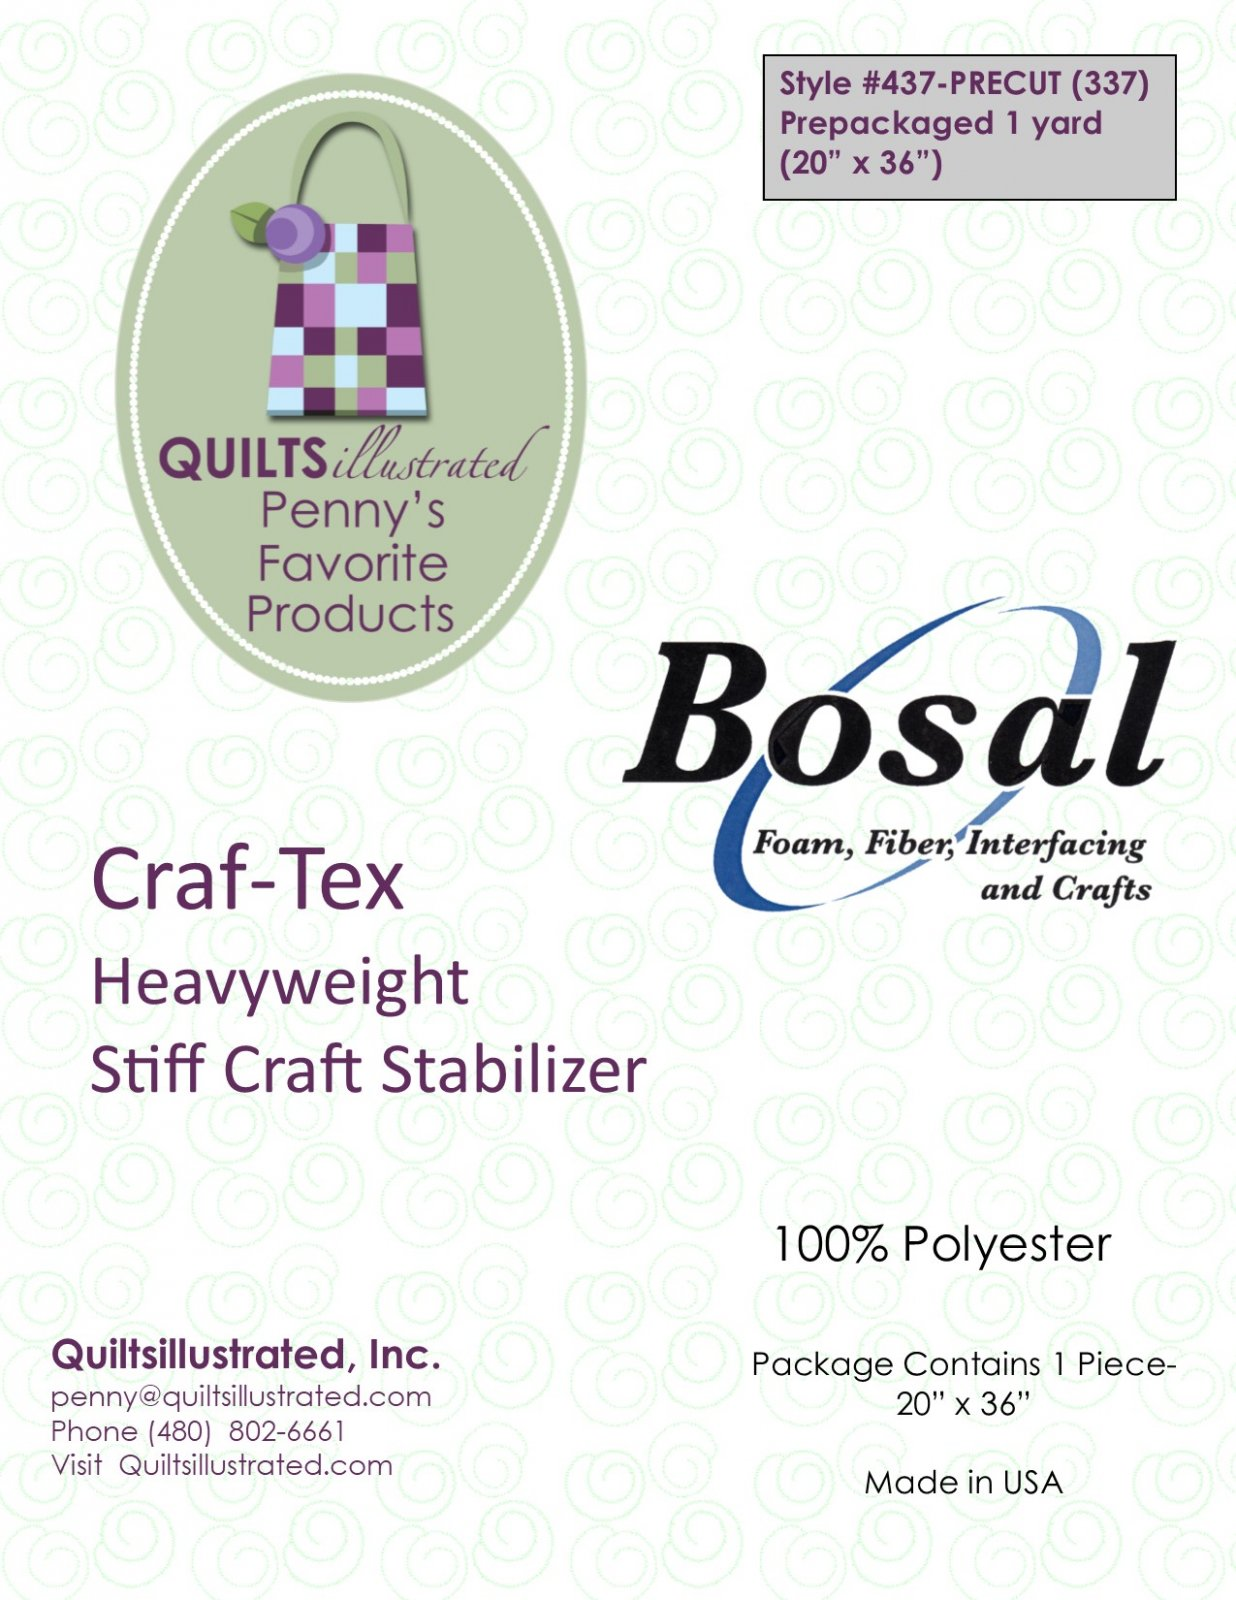 Bosal 437(337) Craf-Tex Stabilizer, 1 yard package